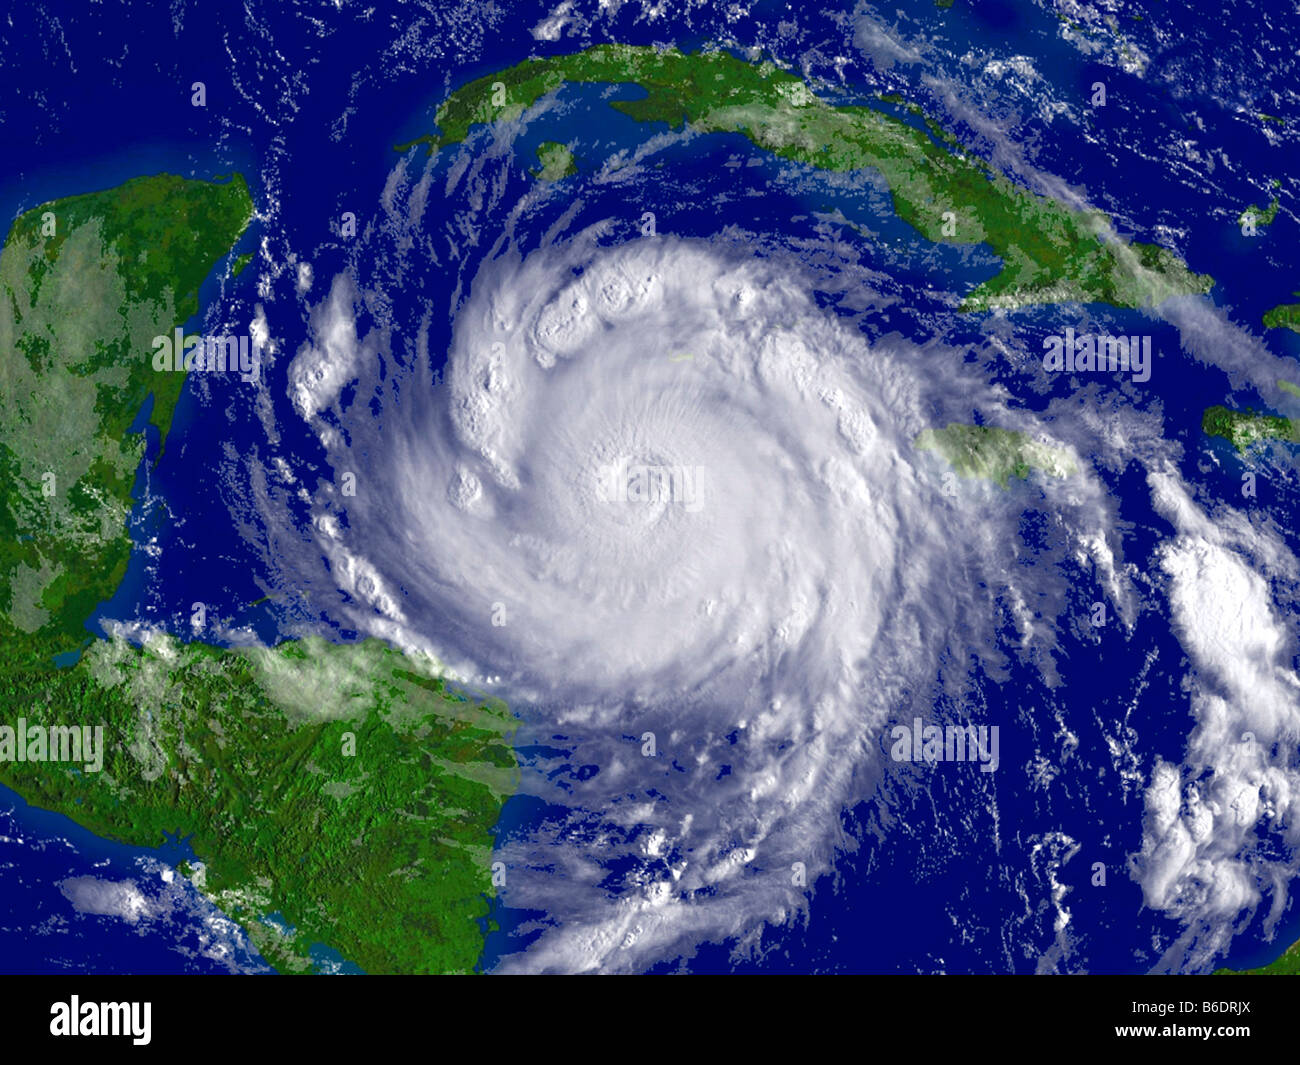 Hurricane Dean, satellite image. North is at top. Image obtained at 04:55 local time on 20 August2007. - Stock Image